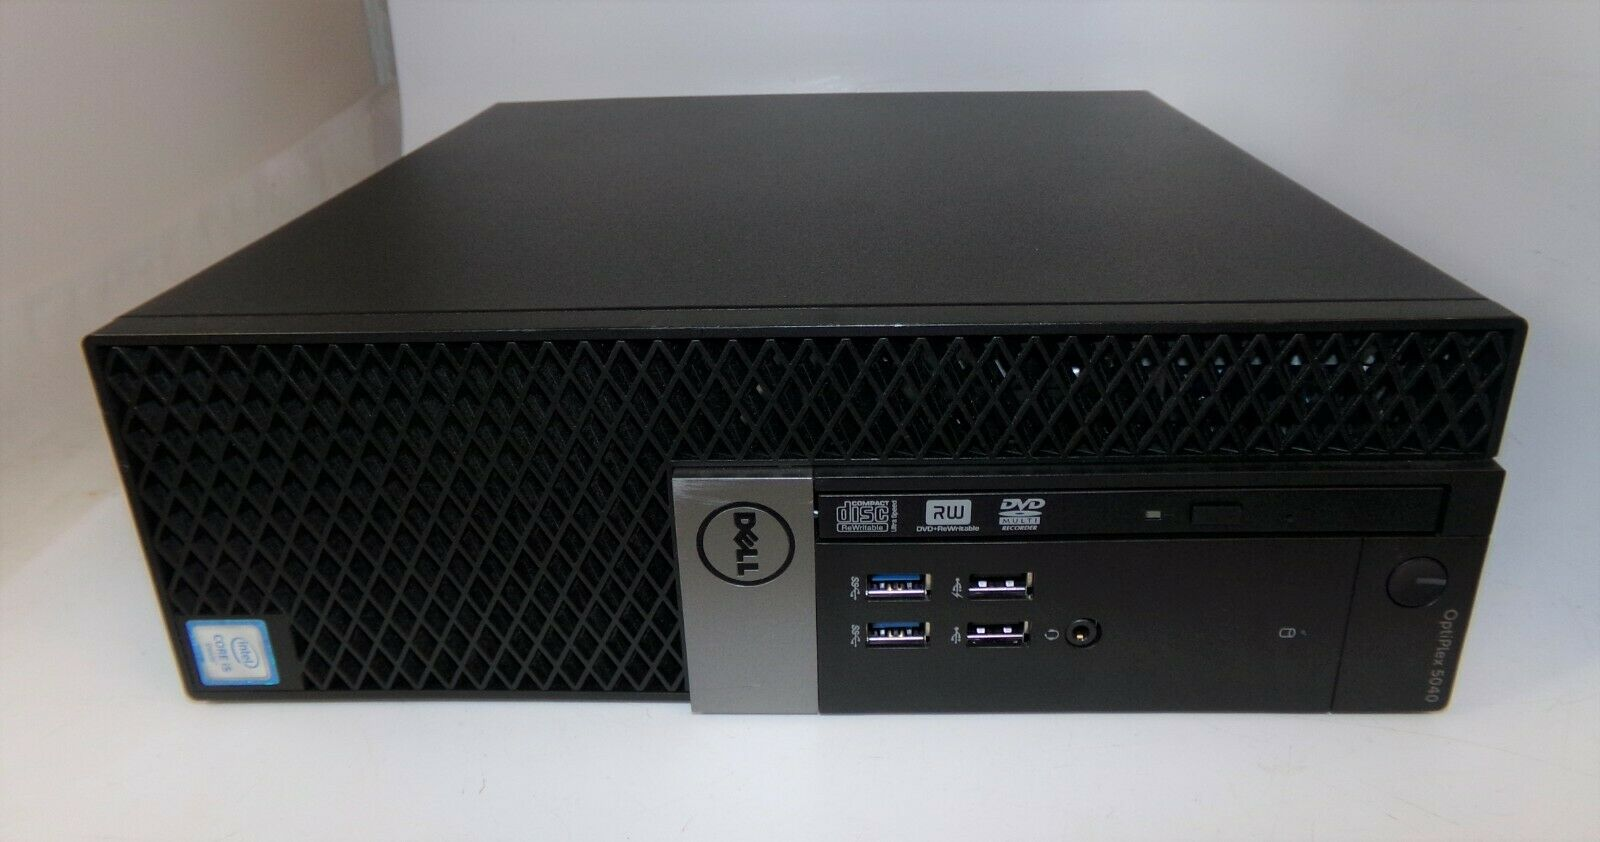 Dell Optiplex 5040 SFF i5-6500 3.2GHz 8GB RAM 500GB HDD Windows 10 Home. Buy it now for 184.69